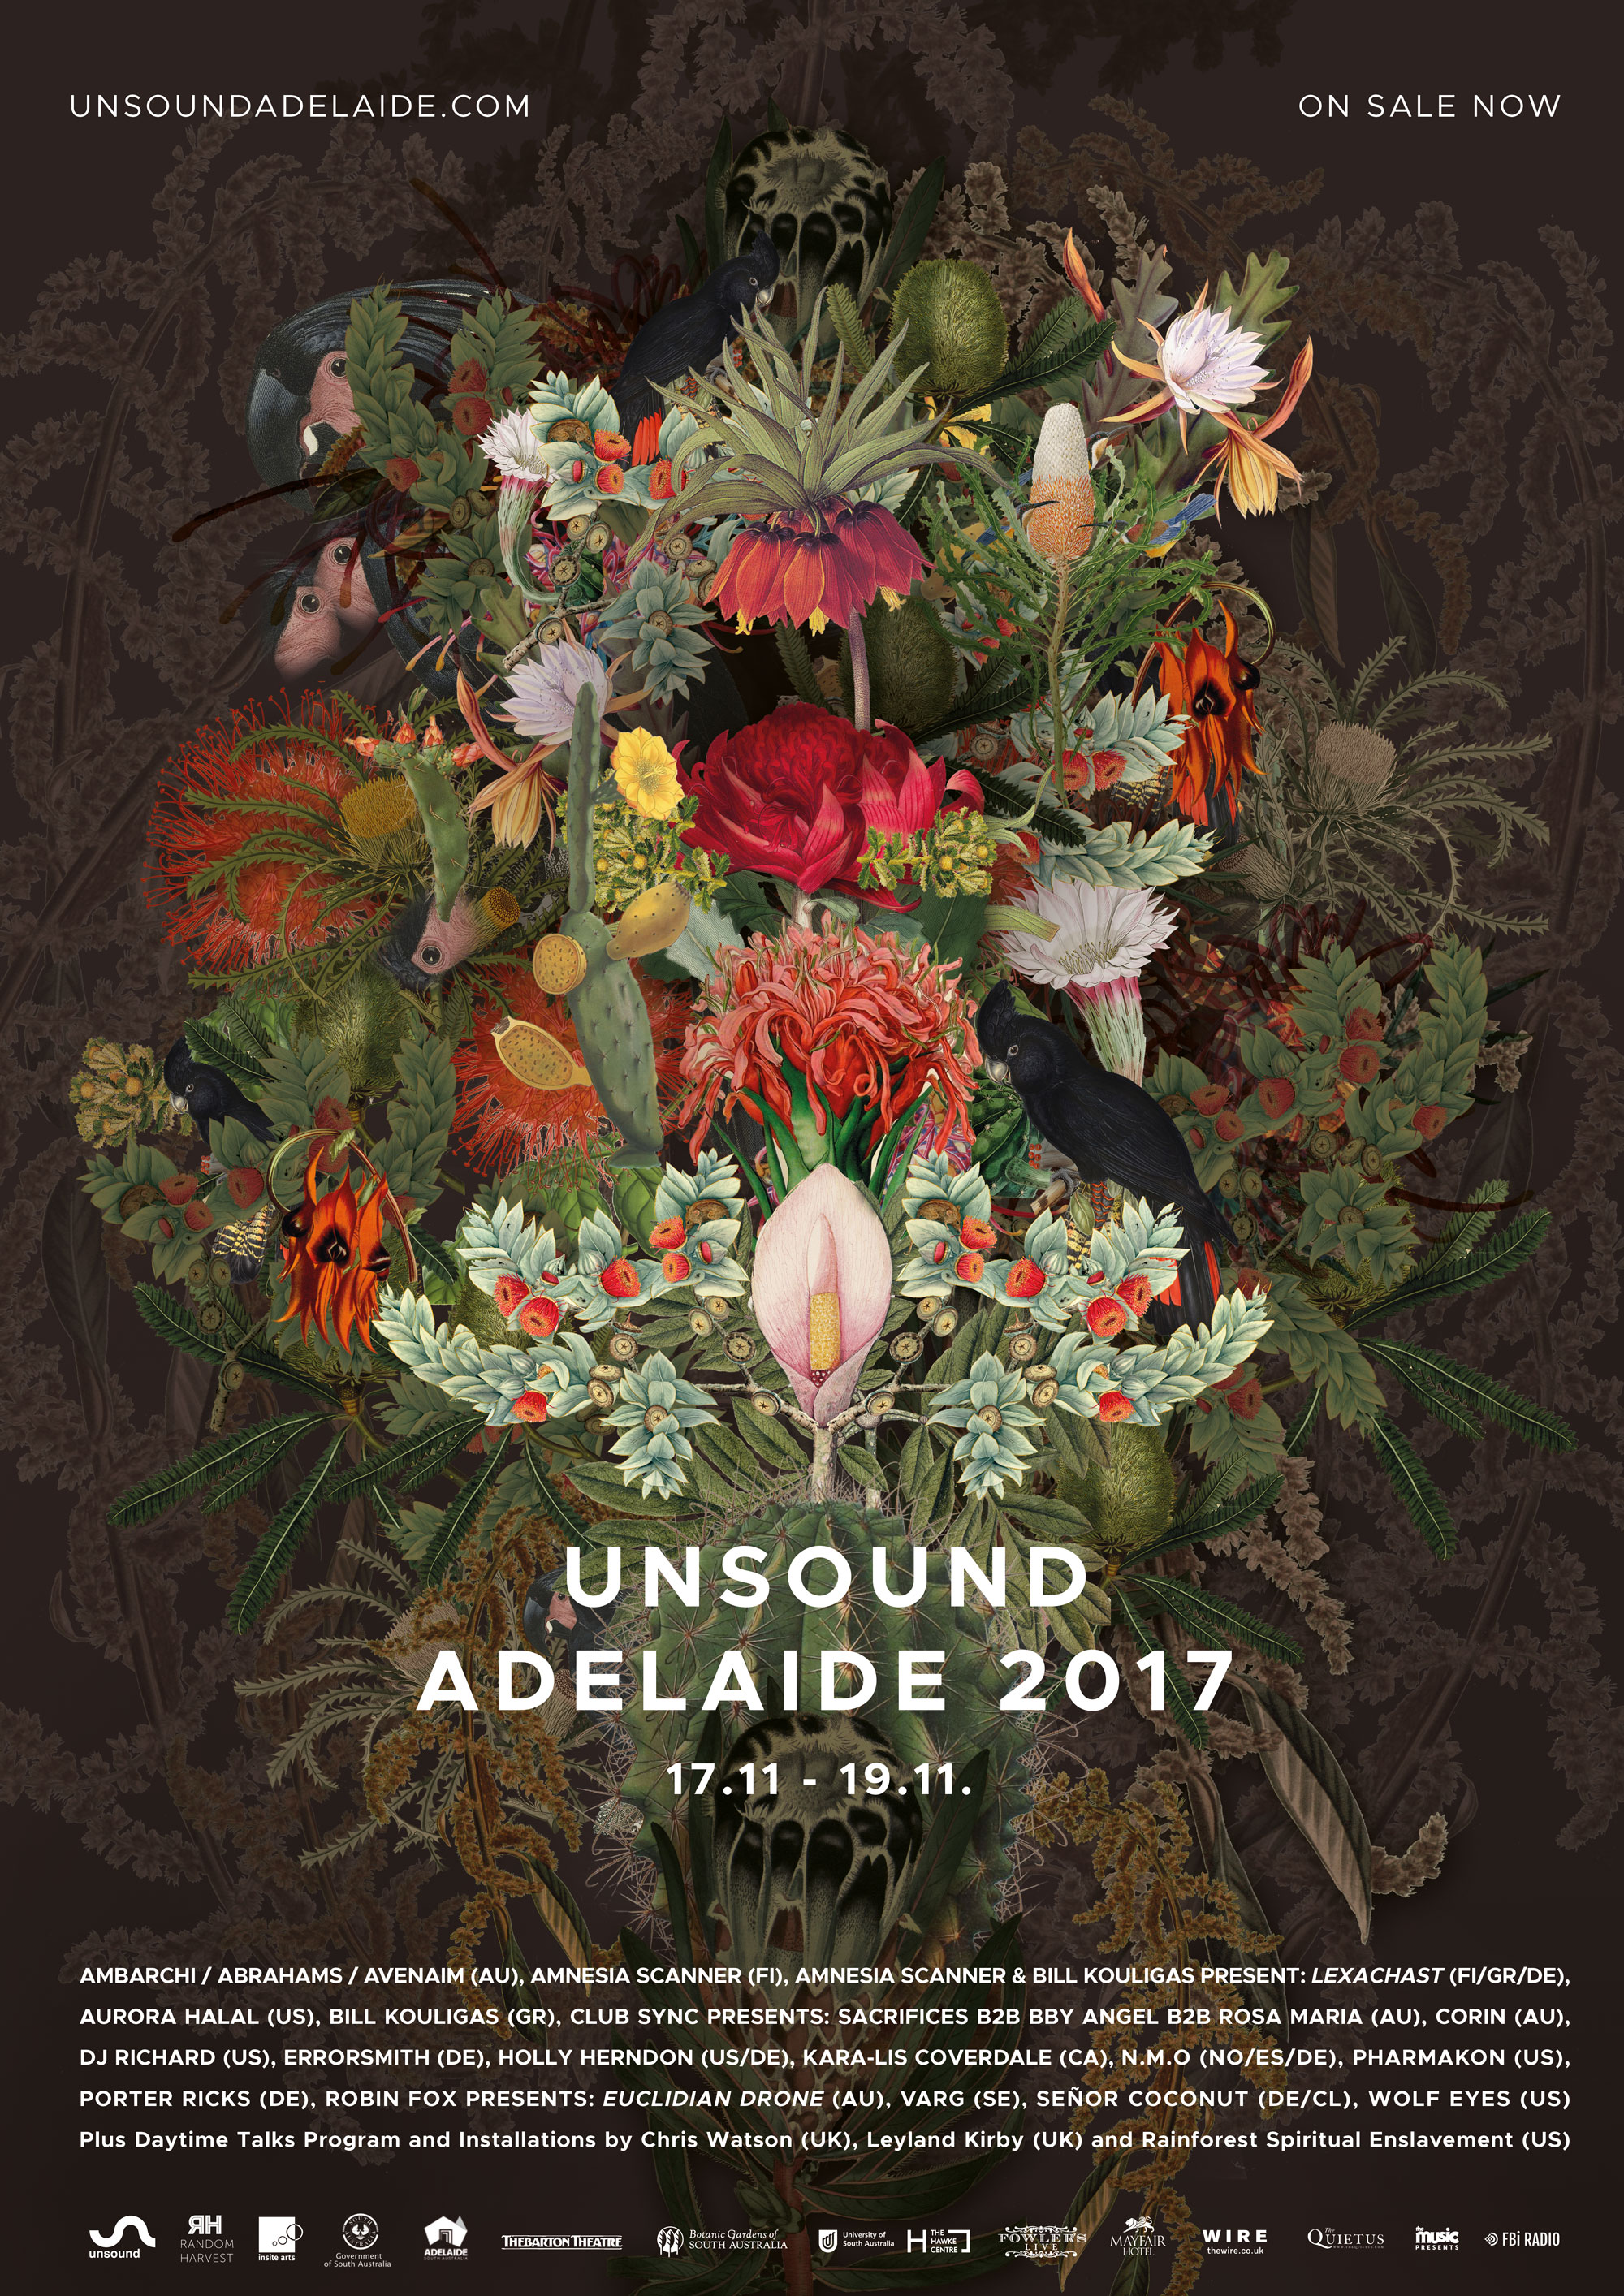 Unsound Adelaide 2017 poster